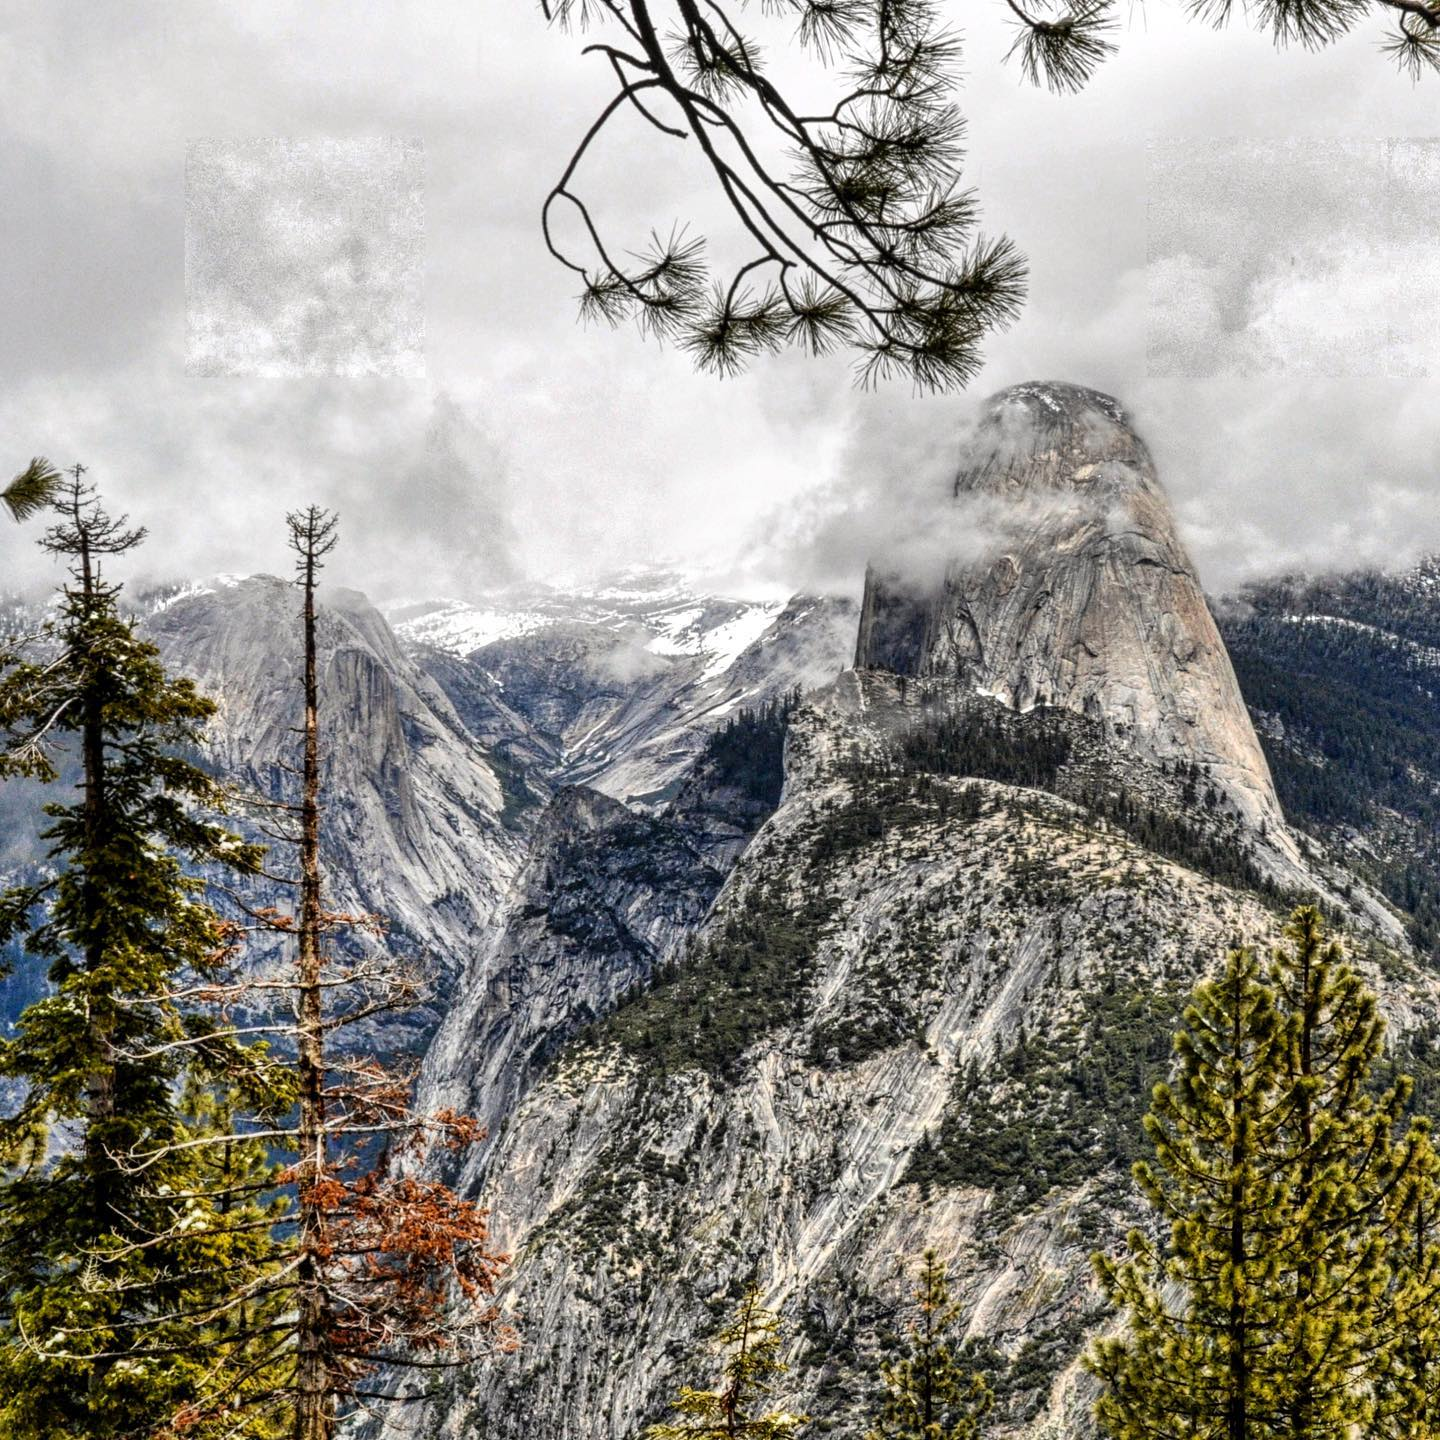 Washburn Point, Yosemite NP, California  Cloudy Half Dome from Washburn Point. Washburn Point is located 3/4 of a miles from the end of Glacier Point Road. The views are similar to Glacier Point. #usa #usa🇺🇸 #usatravel #usatrip #roadtripamerica #roadtripcalifornia #california #californialove #yosemitenationalpark #yosemite #yosemitenps #halfdome #washburnpoint #nature #naturelovers #nature_perfection #naturephotography #travelphotography #reisefotografie #reiselust #travelbug #nationalparksusa #californiagram #naturepic #traveladdict #travelawesome #travelblog #travelblogger #reiseblogger #reiseblog